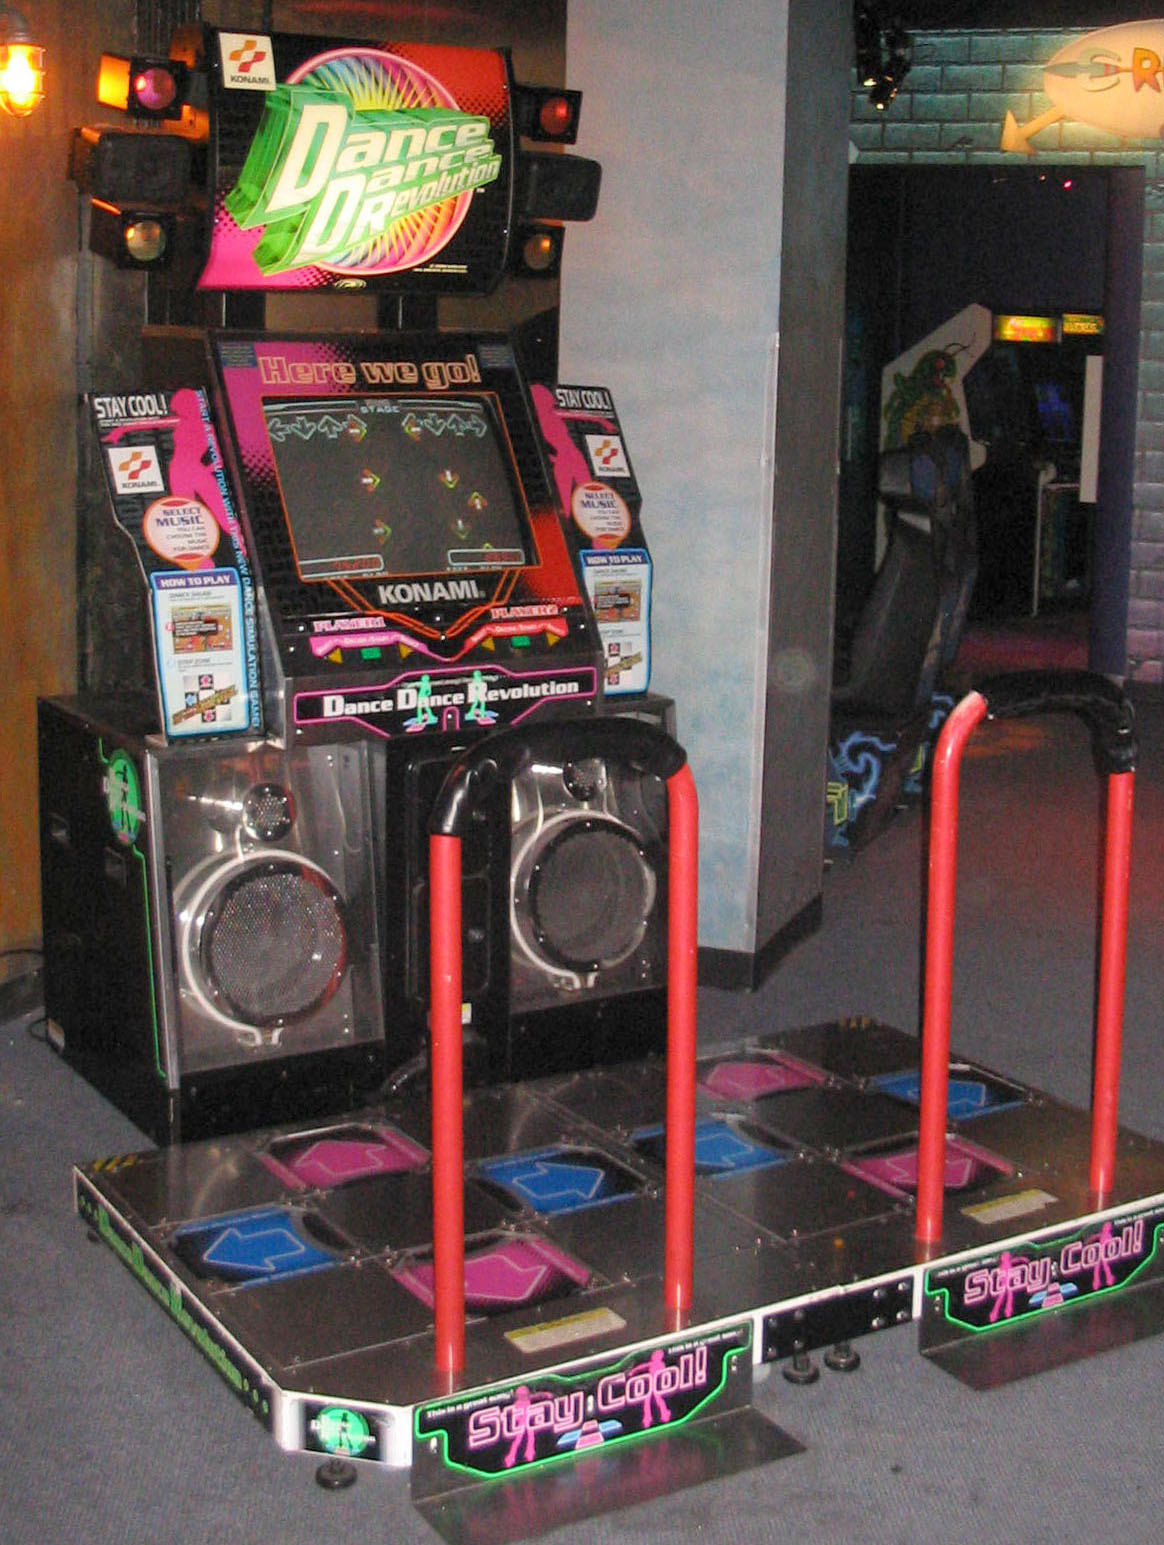 Dance_Dance_Revolution_North_American_arcade_machine_3.jpg